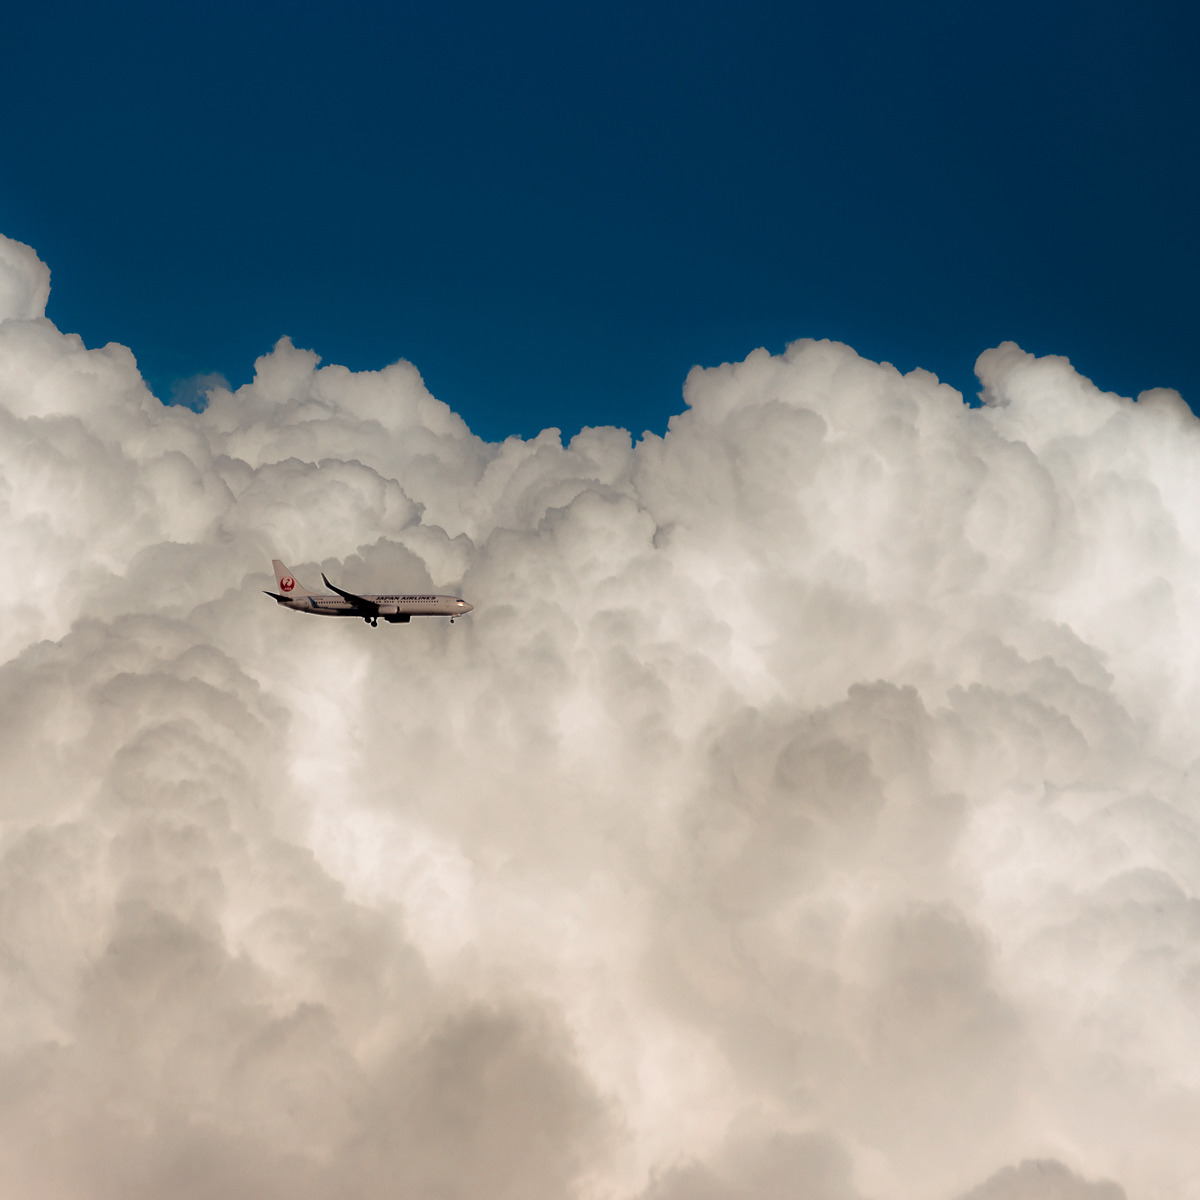 plane flying among clouds